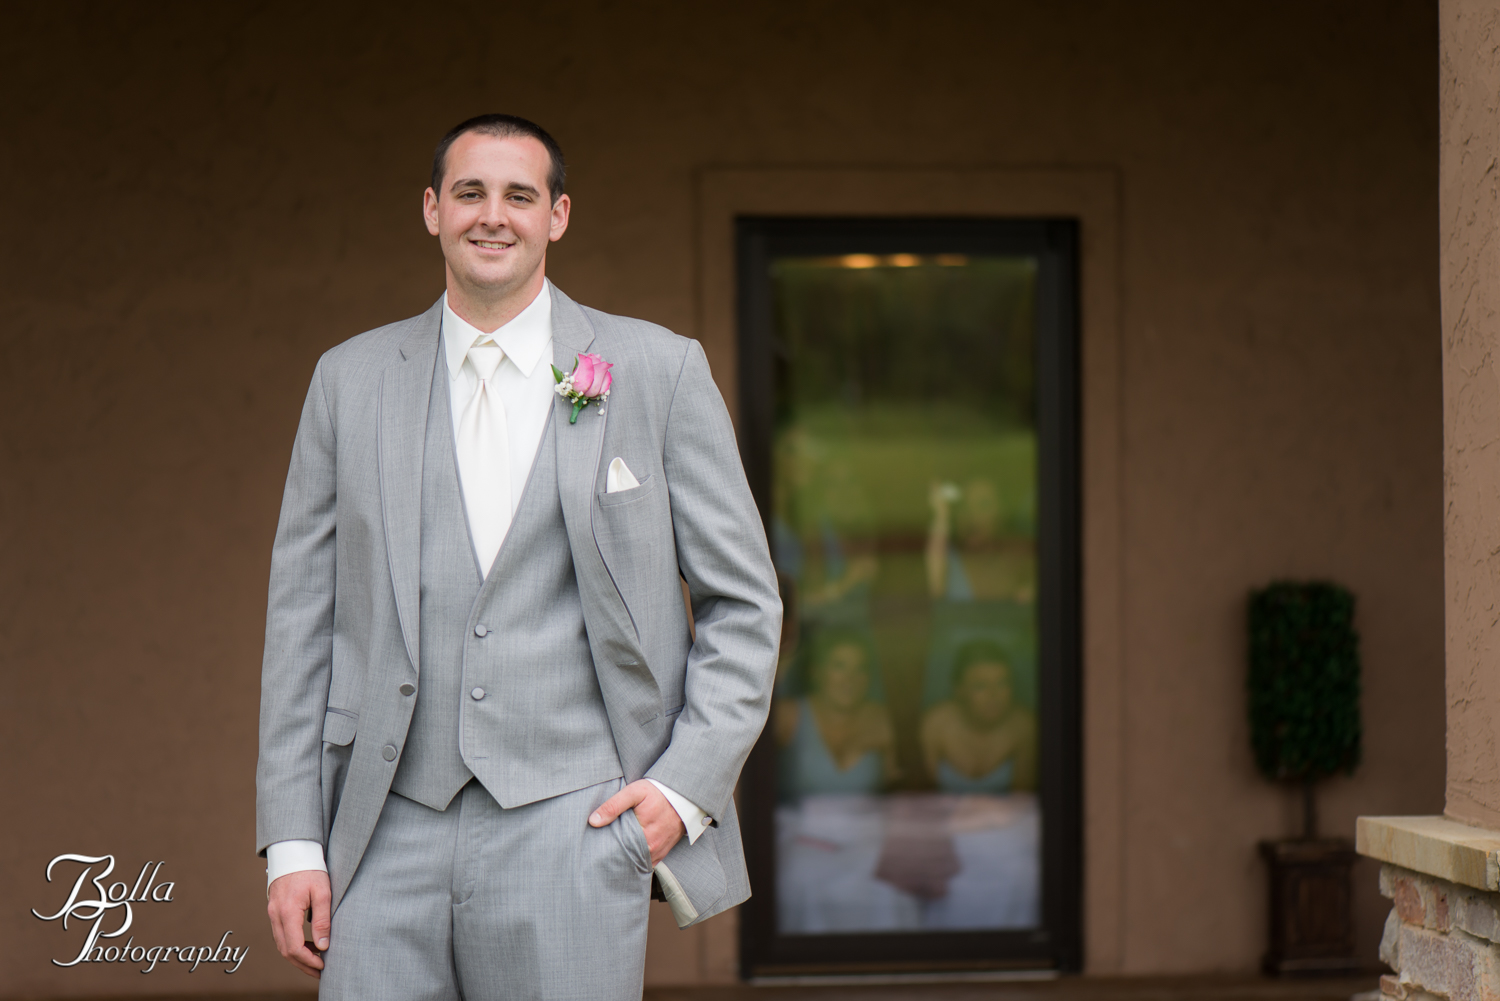 Bolla_Photography_St_Louis_wedding_photographer_Villa_Marie_Winery-0116.jpg